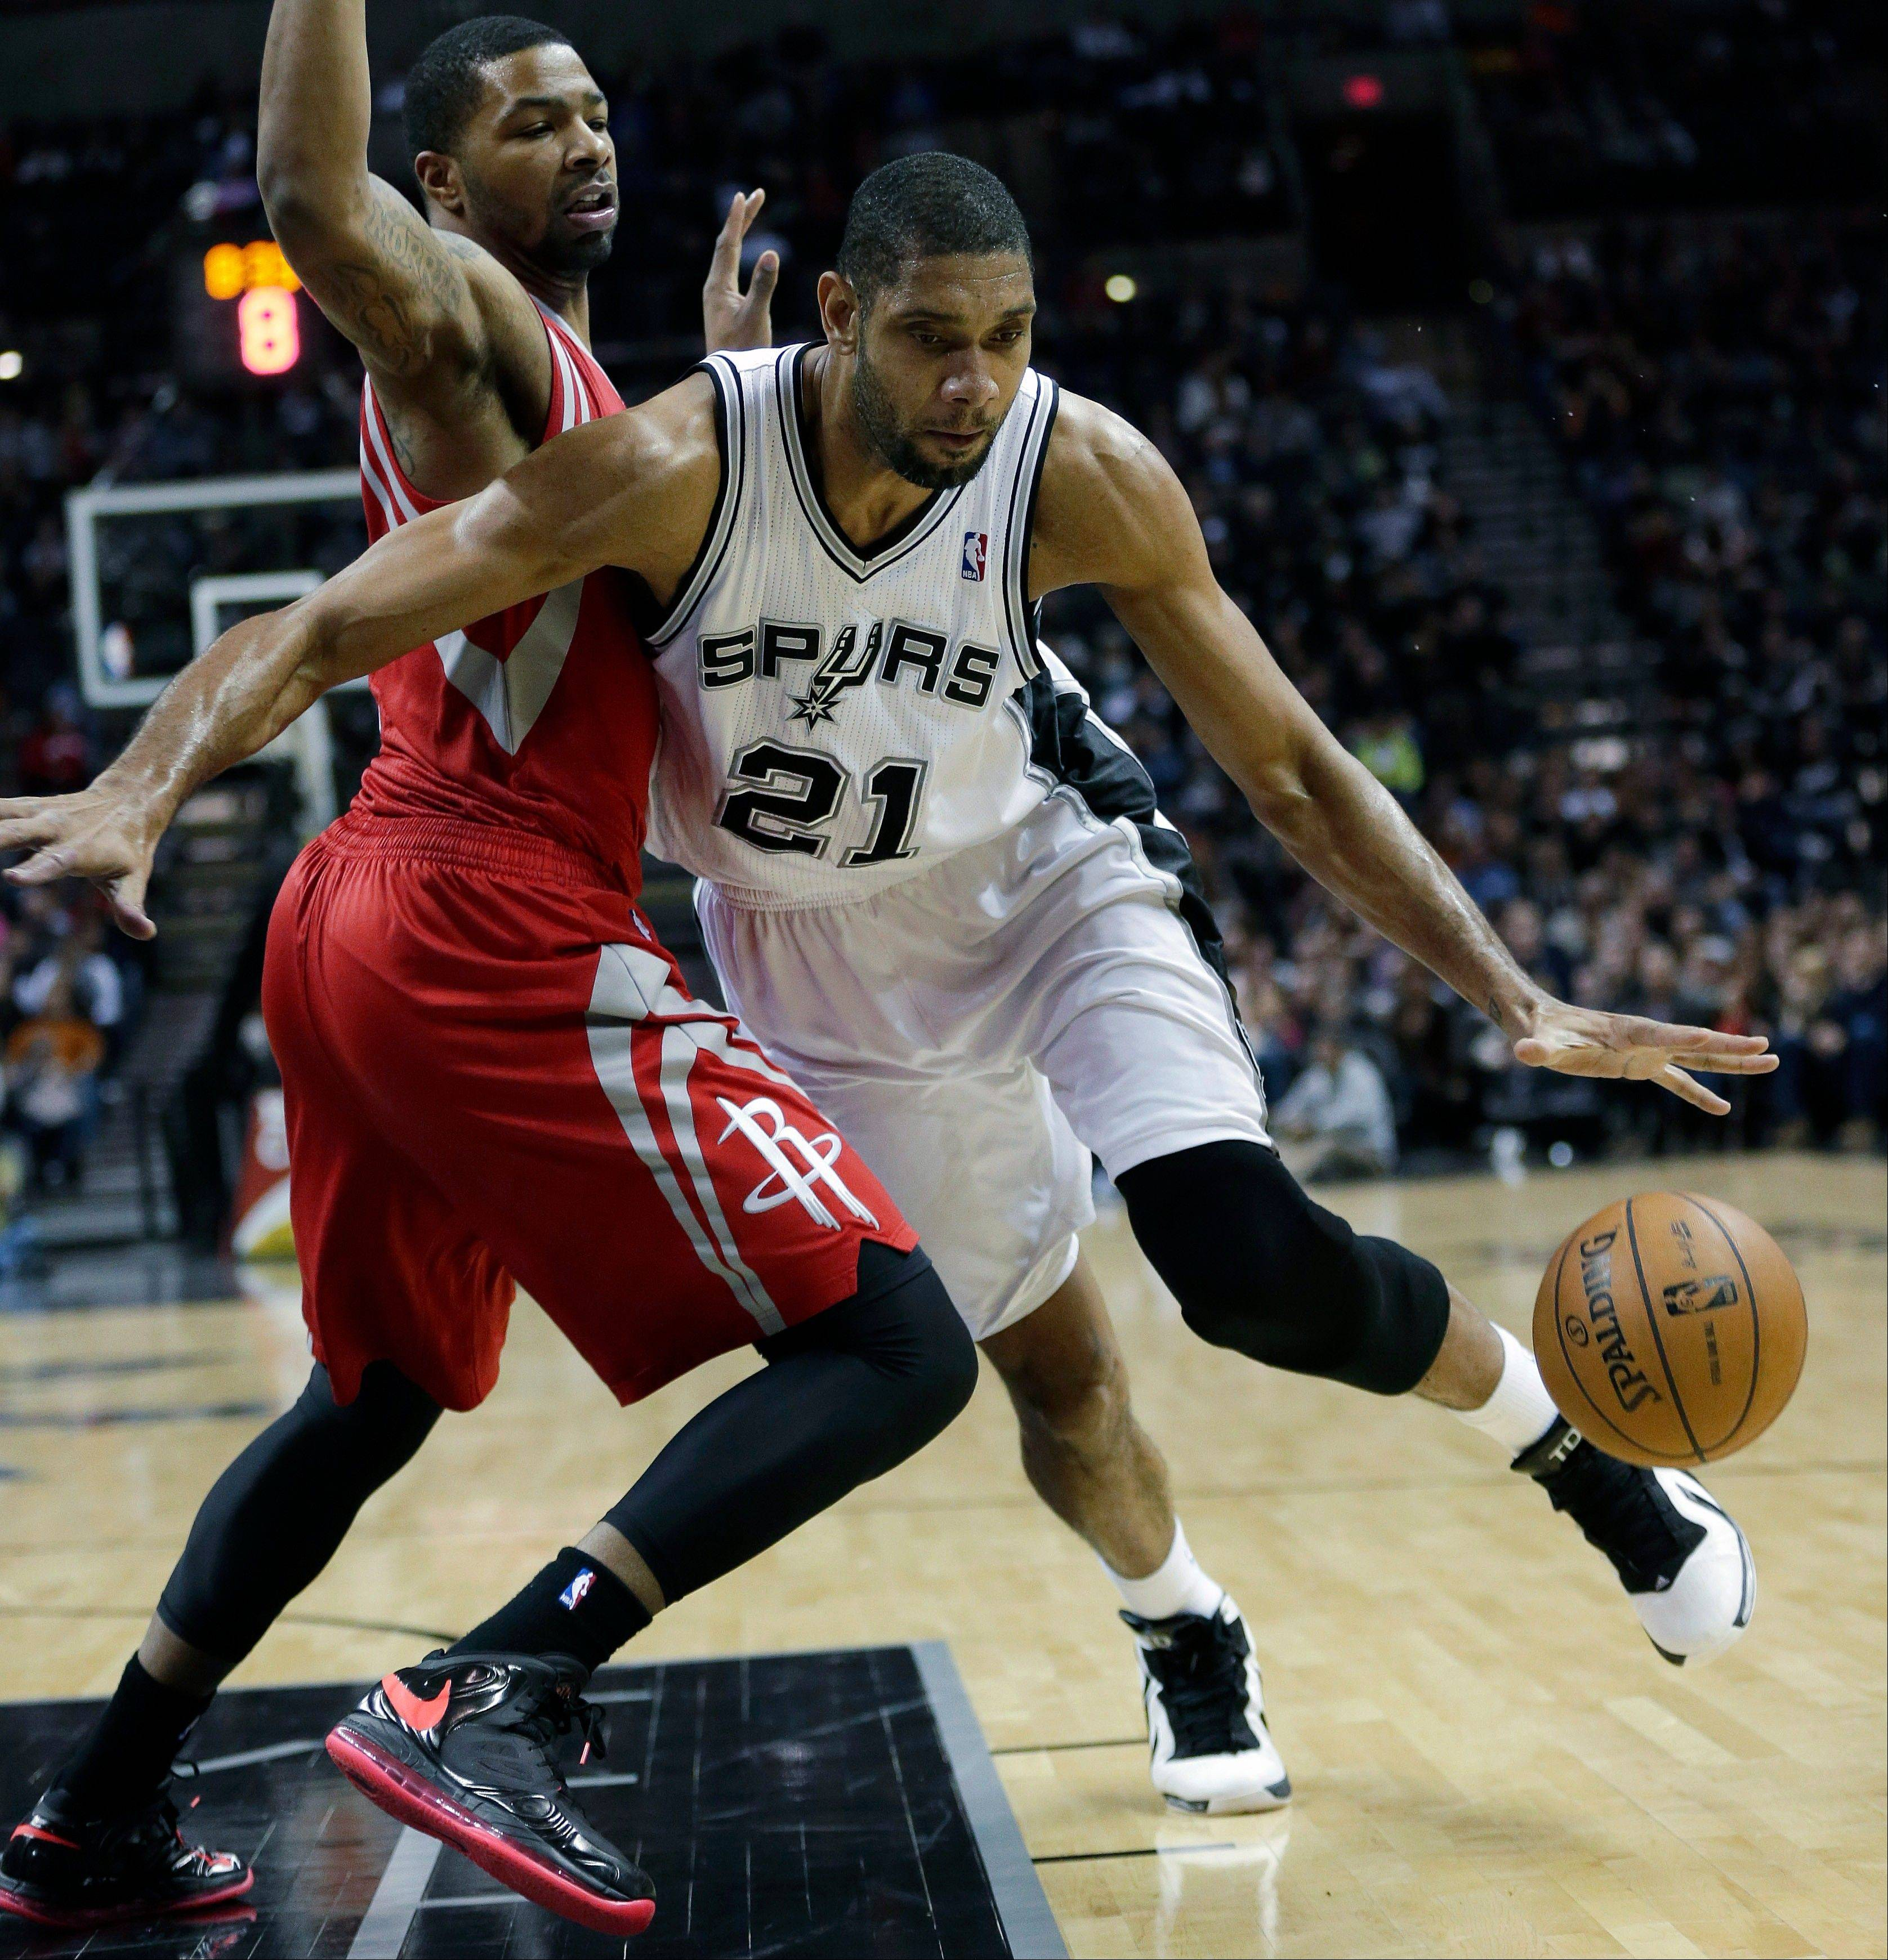 The Spurs' Tim Duncan (21) works the ball around Houston's Marcus Morris during the first quarter Friday in San Antonio.